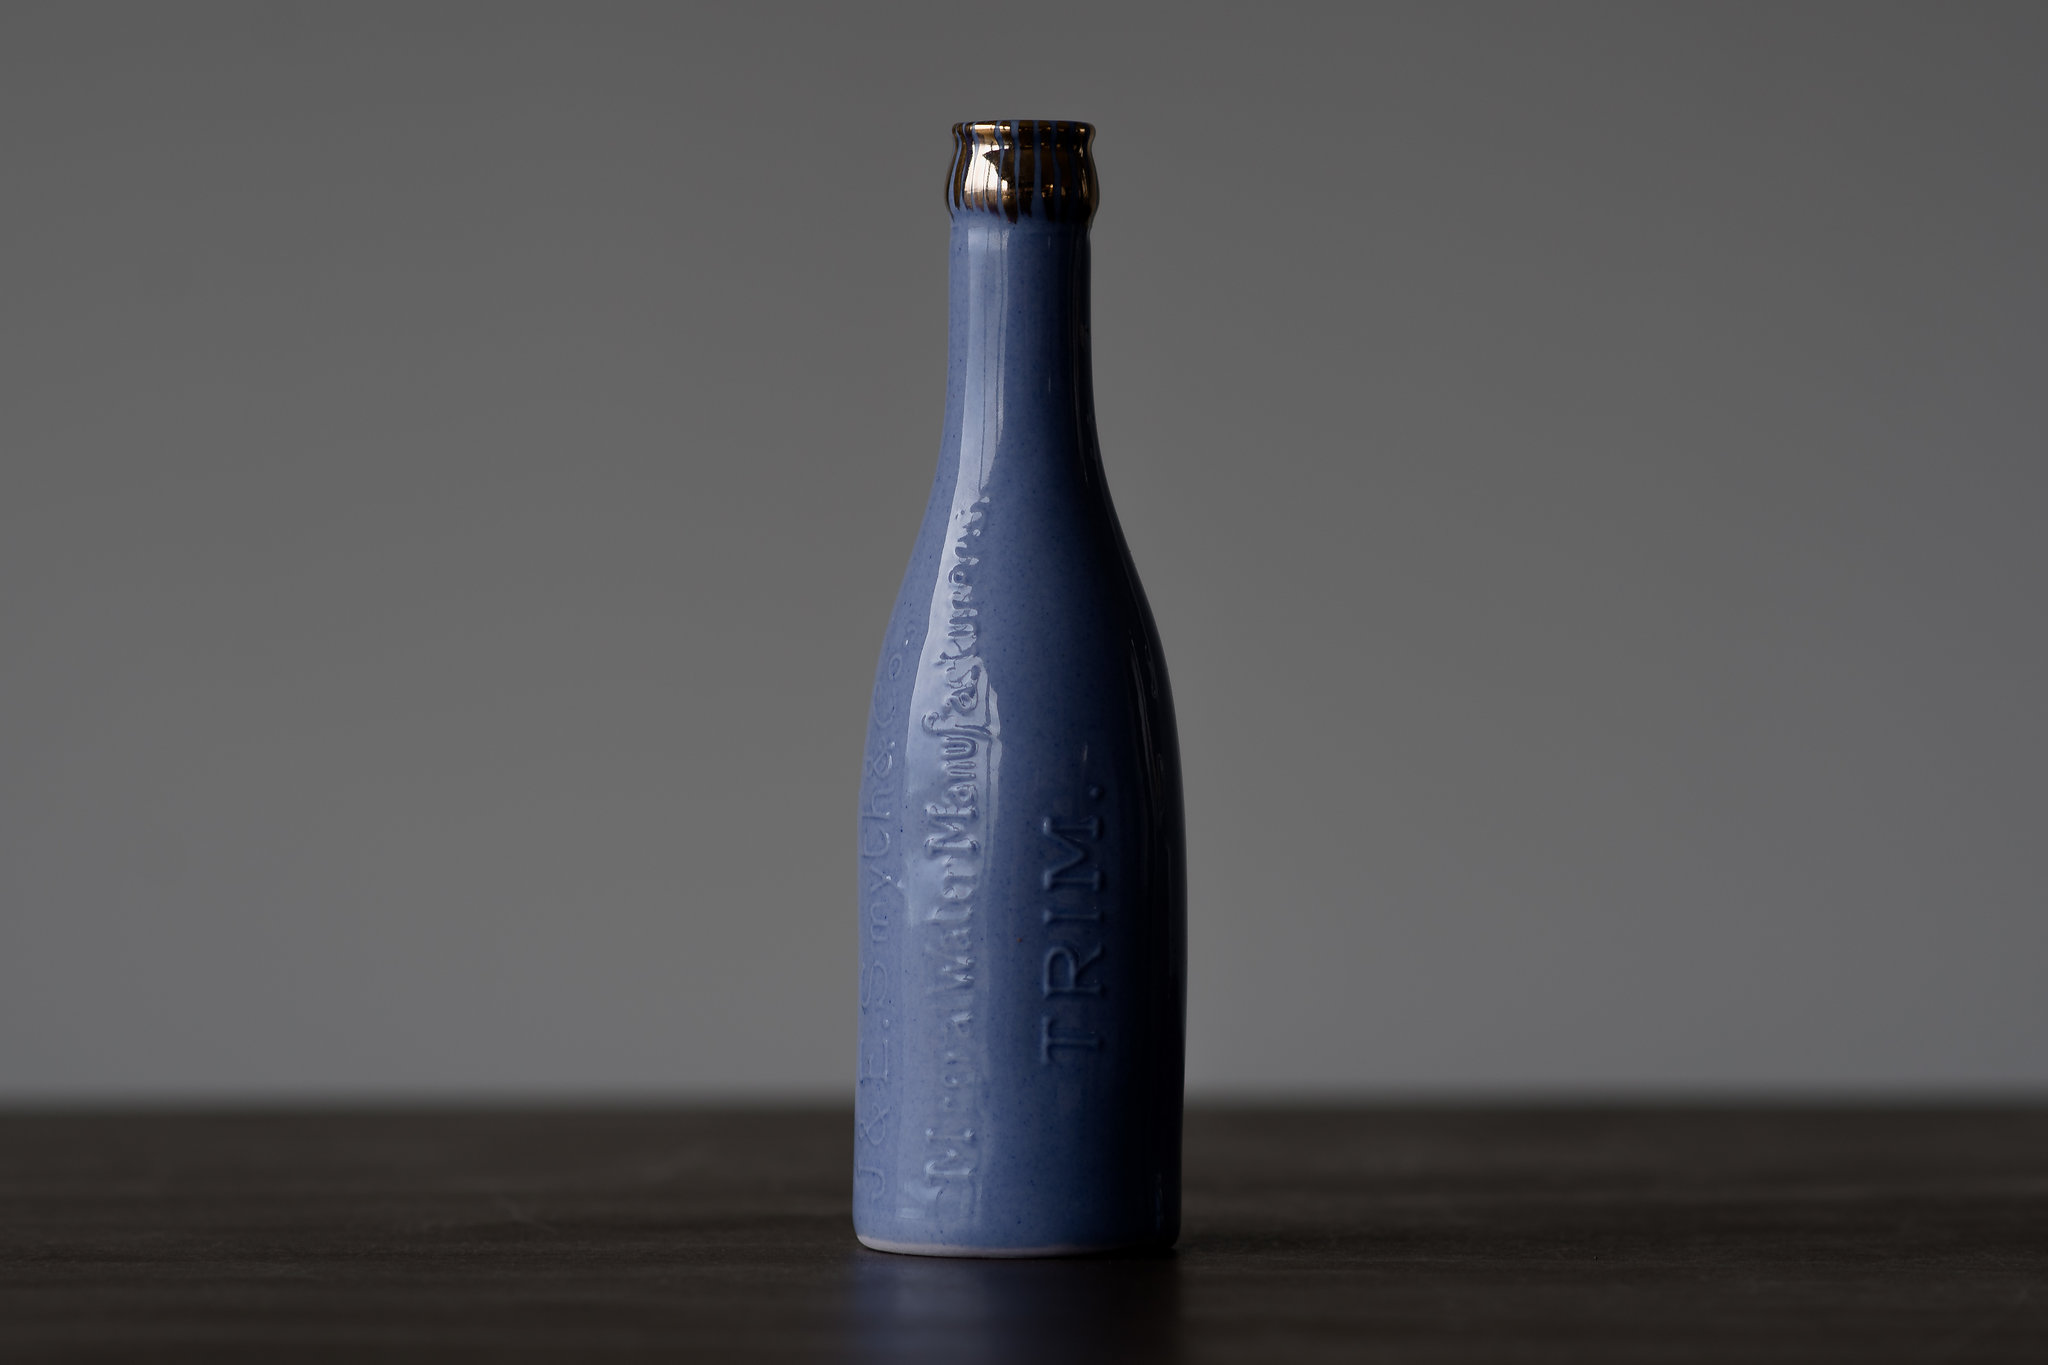 Say hello to another from the mineral water family, this time in our new shade of dusky blue, all the way from Trim, County Meath.